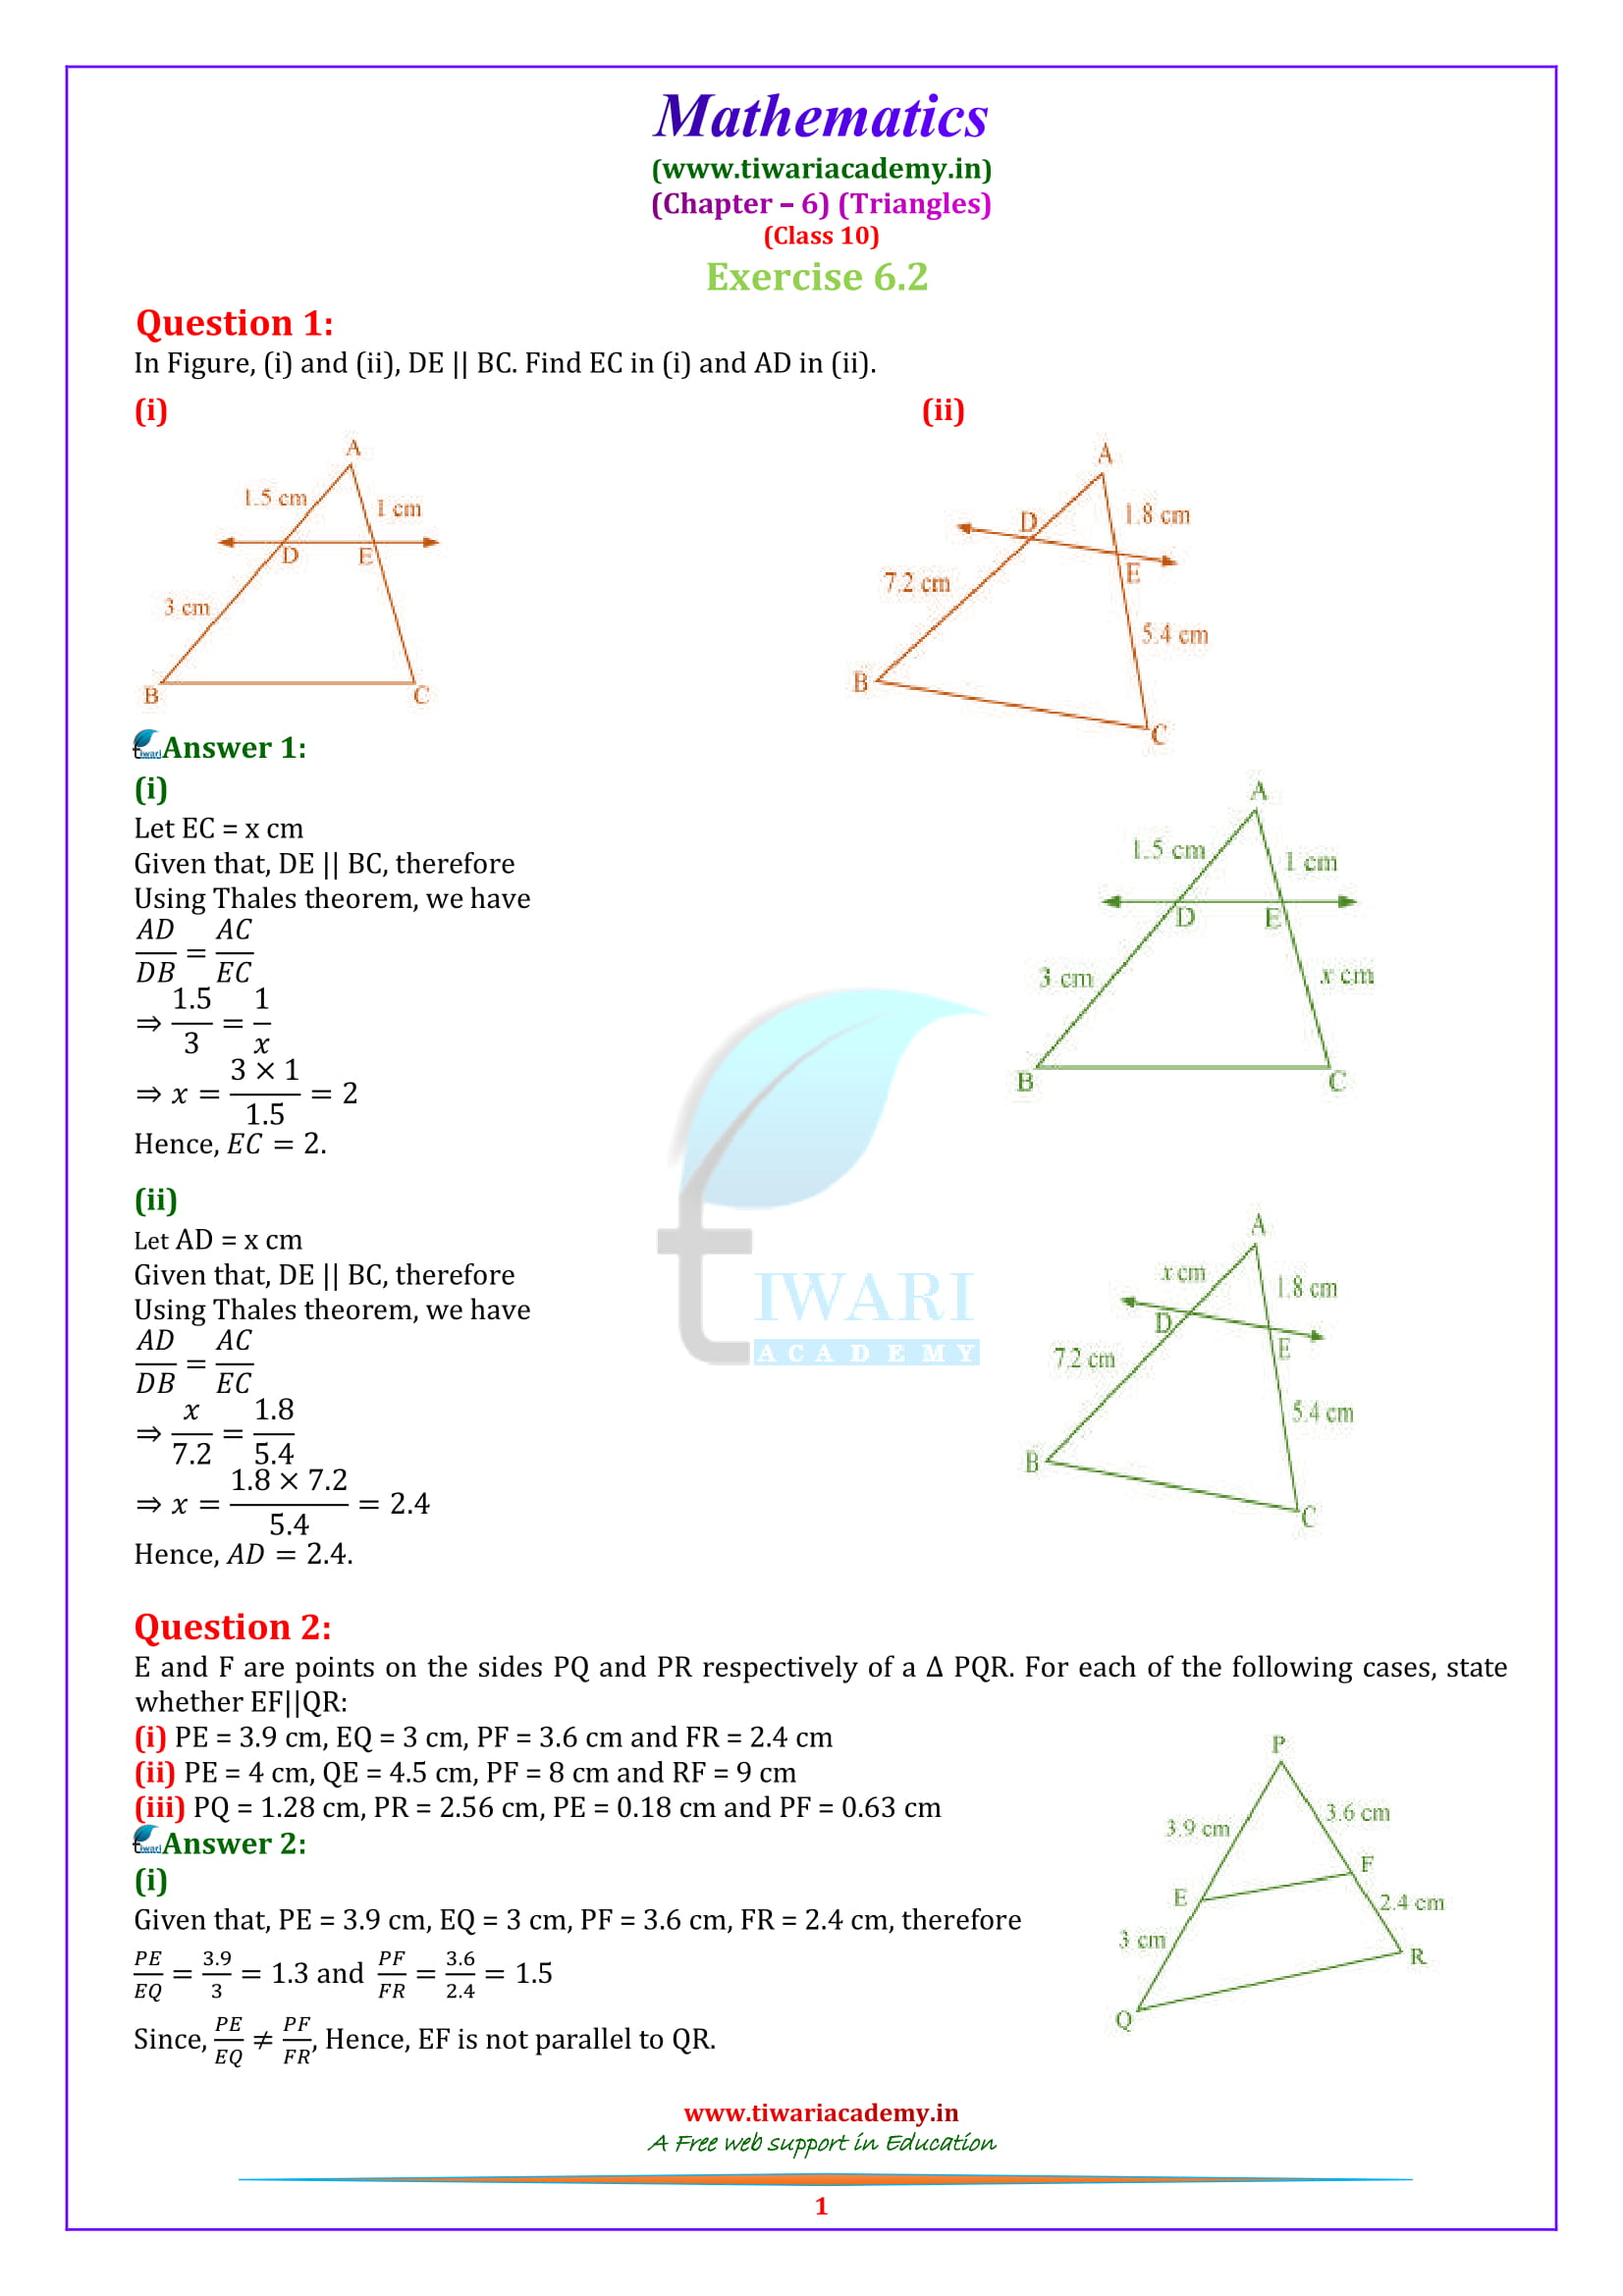 NCERT Solutions for Class 10 Maths Chapter 6 Exercise 6 2